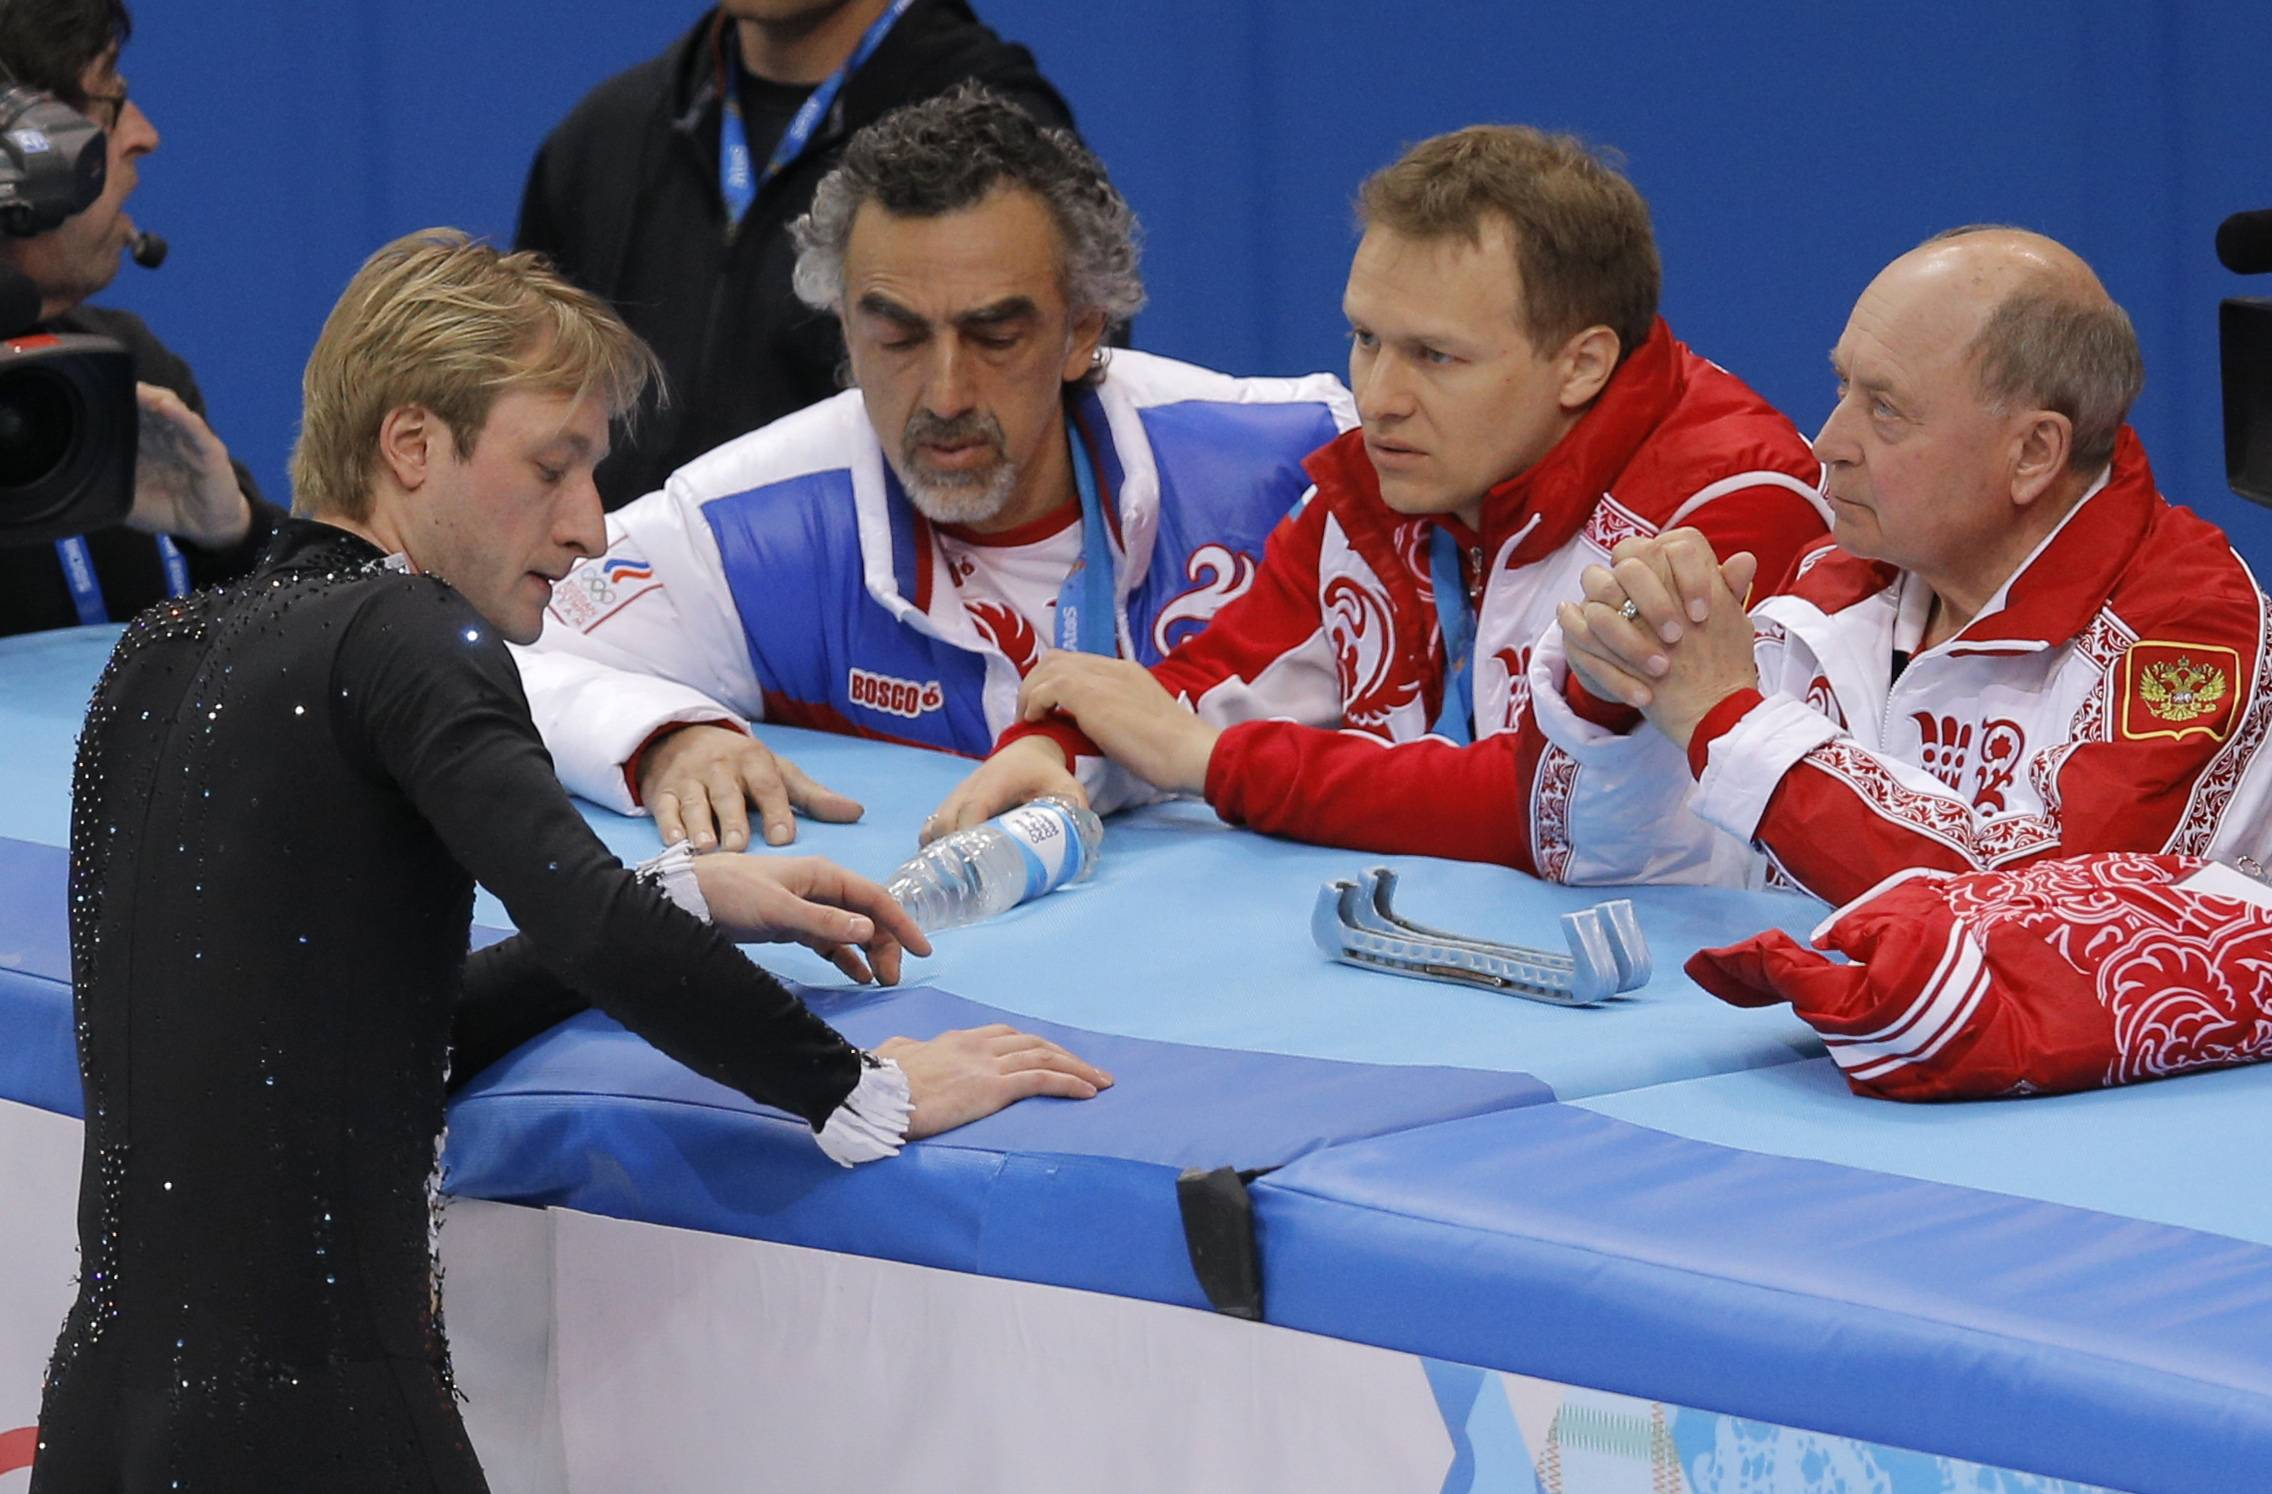 Evgeni Plushenko of Russia, left, speaks with team members, including his coach Alexei Mishin, right, before he pulled out of the men's short program figure skating competition due to illness at the Iceberg Skating Palace during the 2014 Winter Olympics, Thursday, Feb. 13, 2014, in Sochi, Russia.